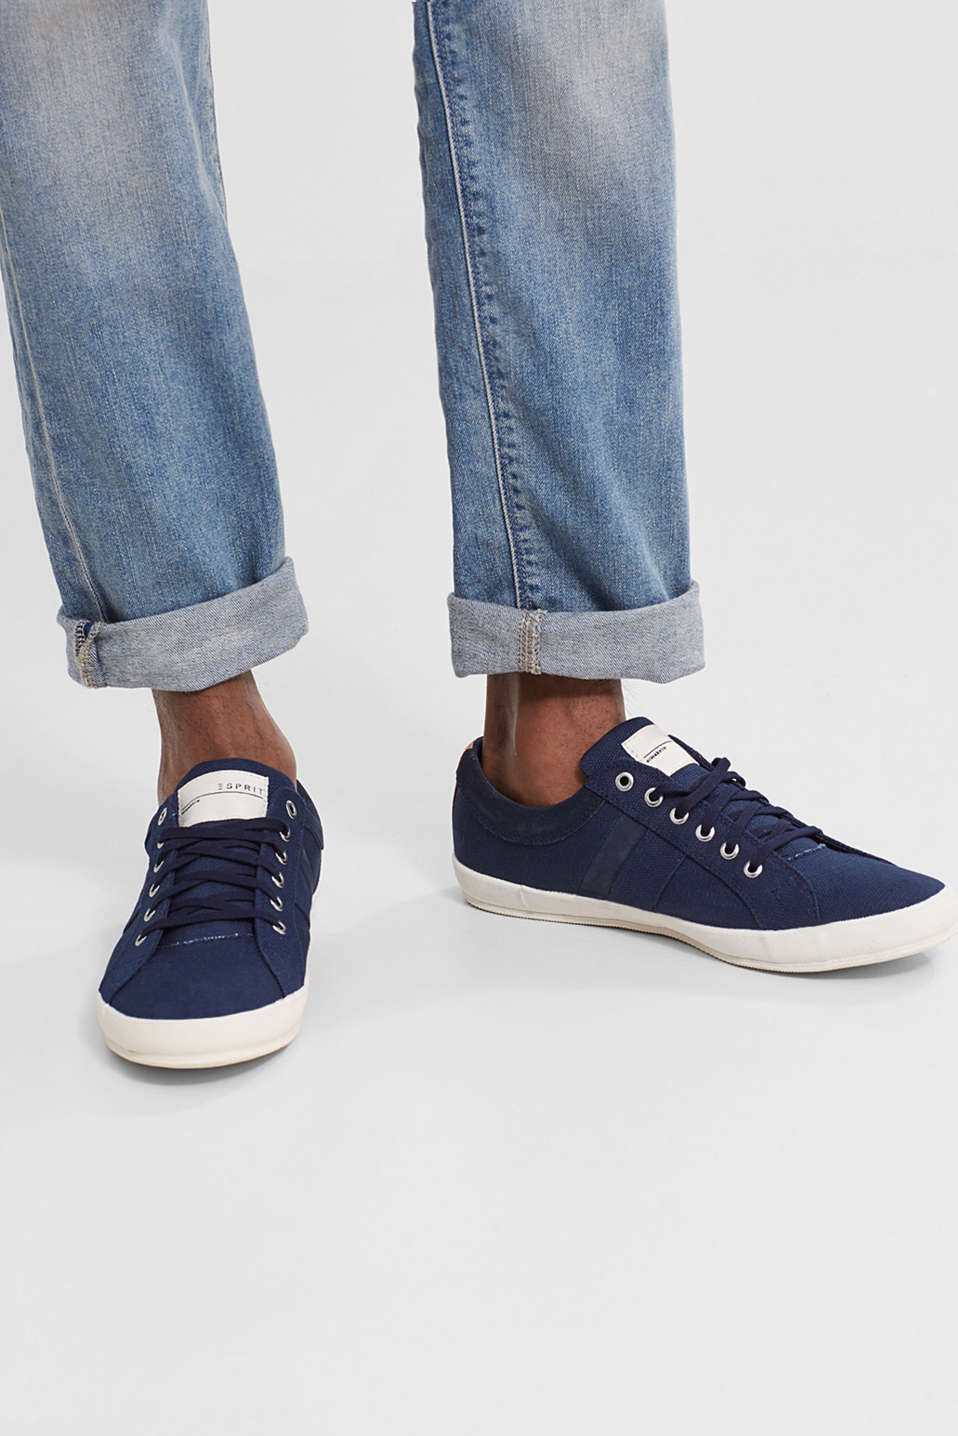 Cotton canvas lace-up trainers with suede panels